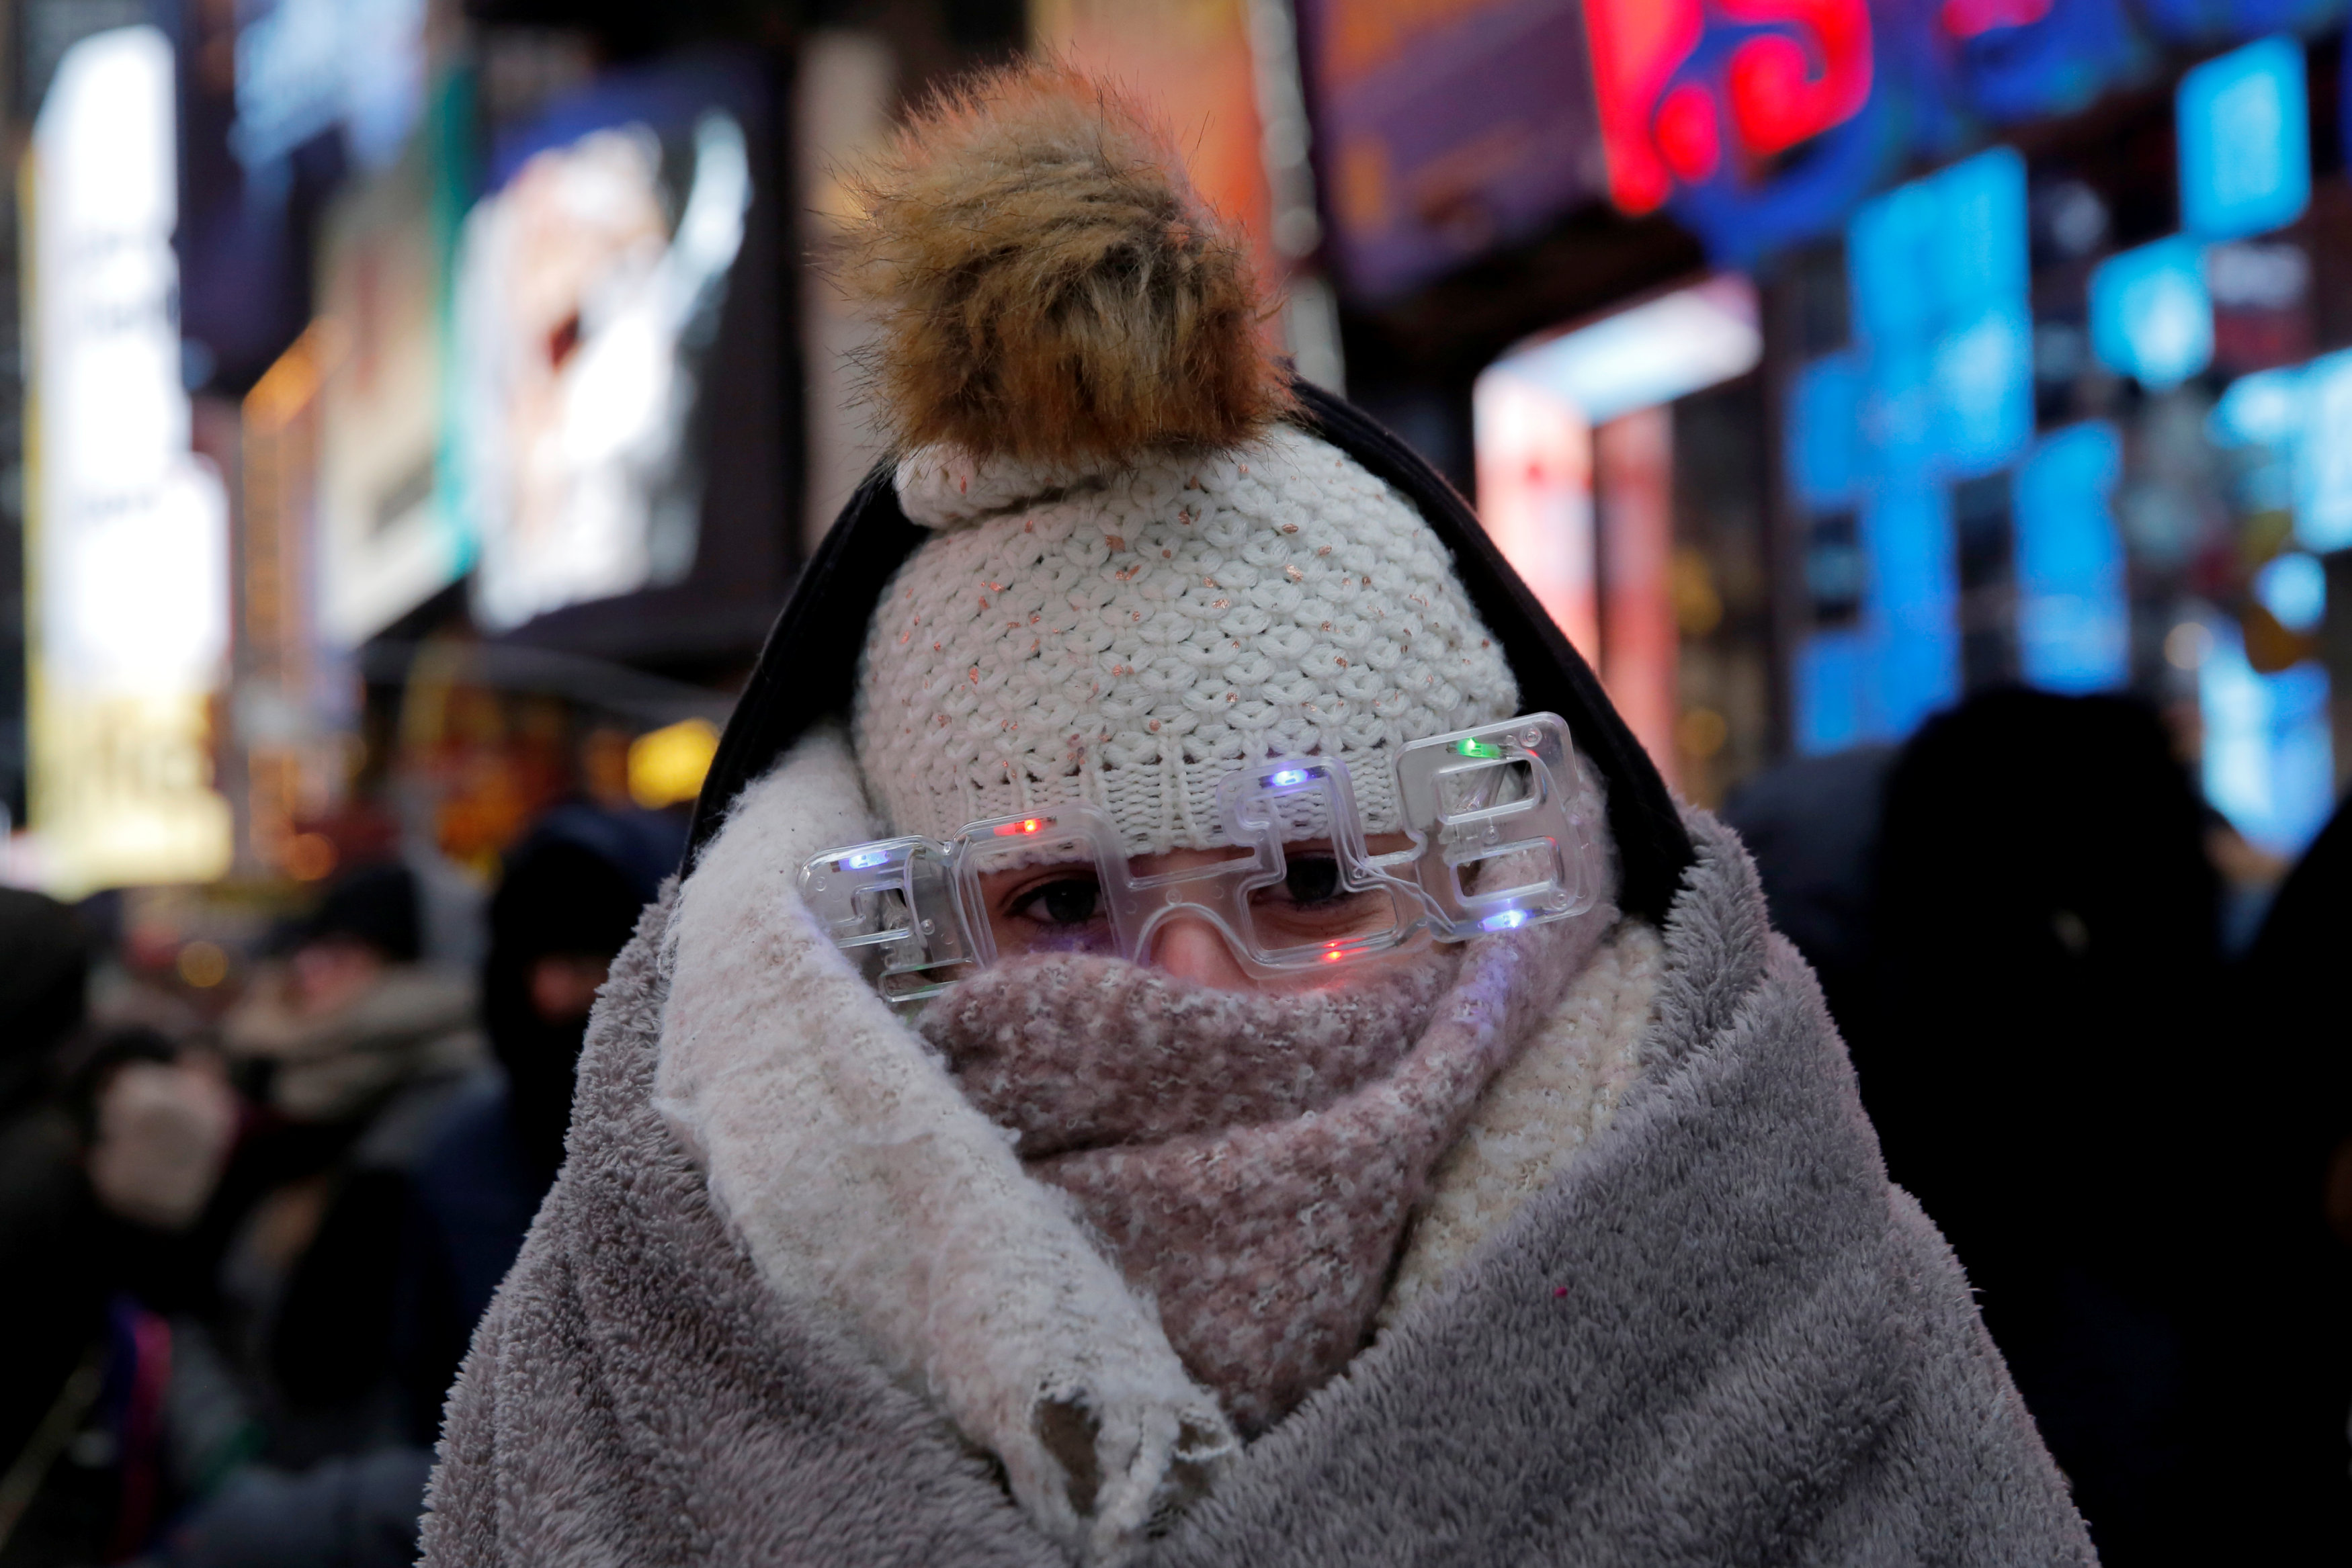 Elena Barduniotis from Colorado waits in Times Square ahead of New Year's celebrations in Manhattan.